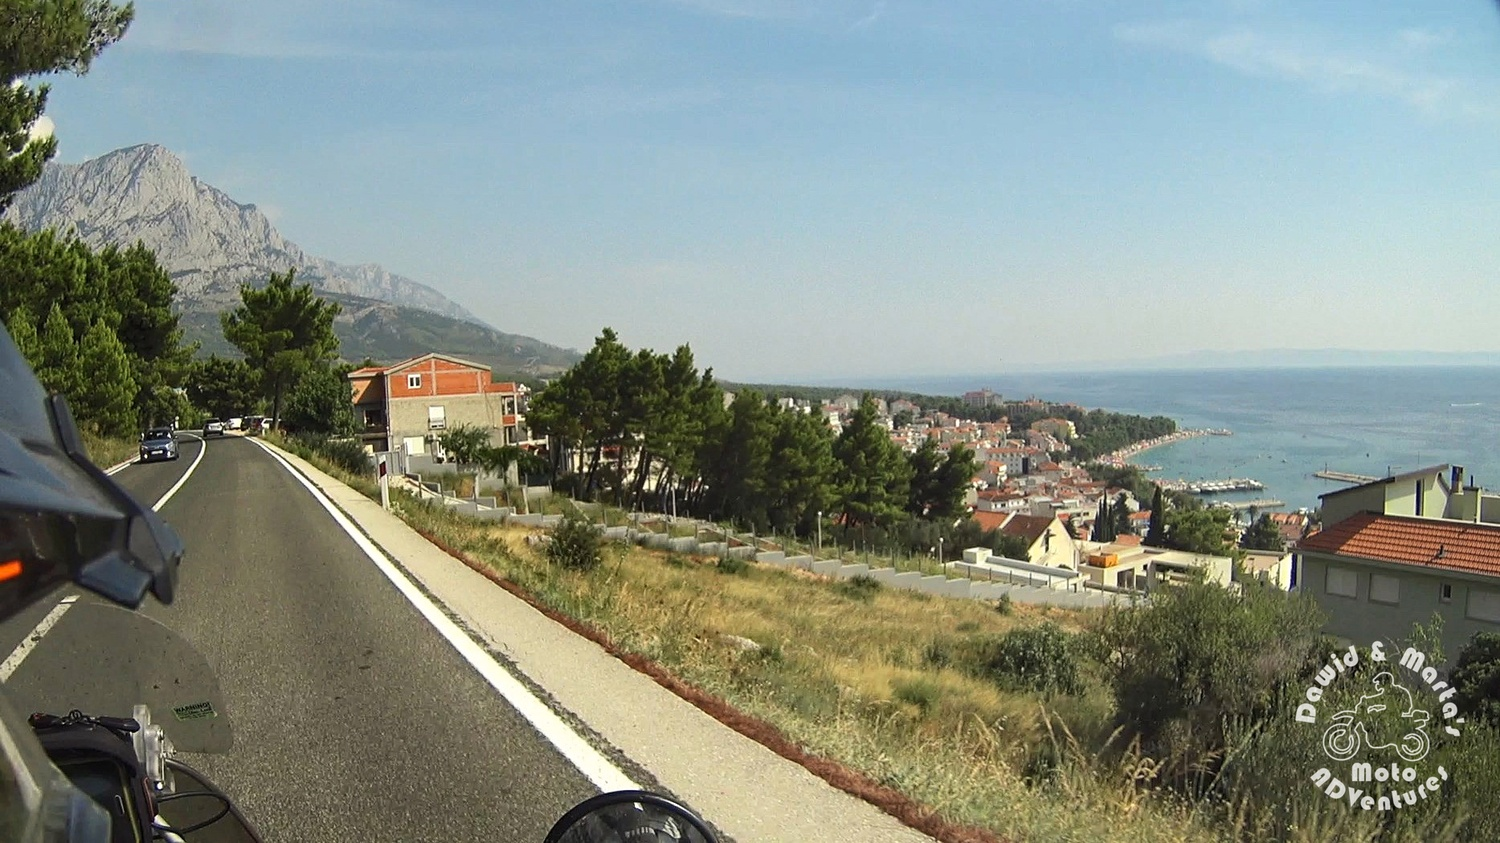 Baska Voda seen from the Adriatic Highway